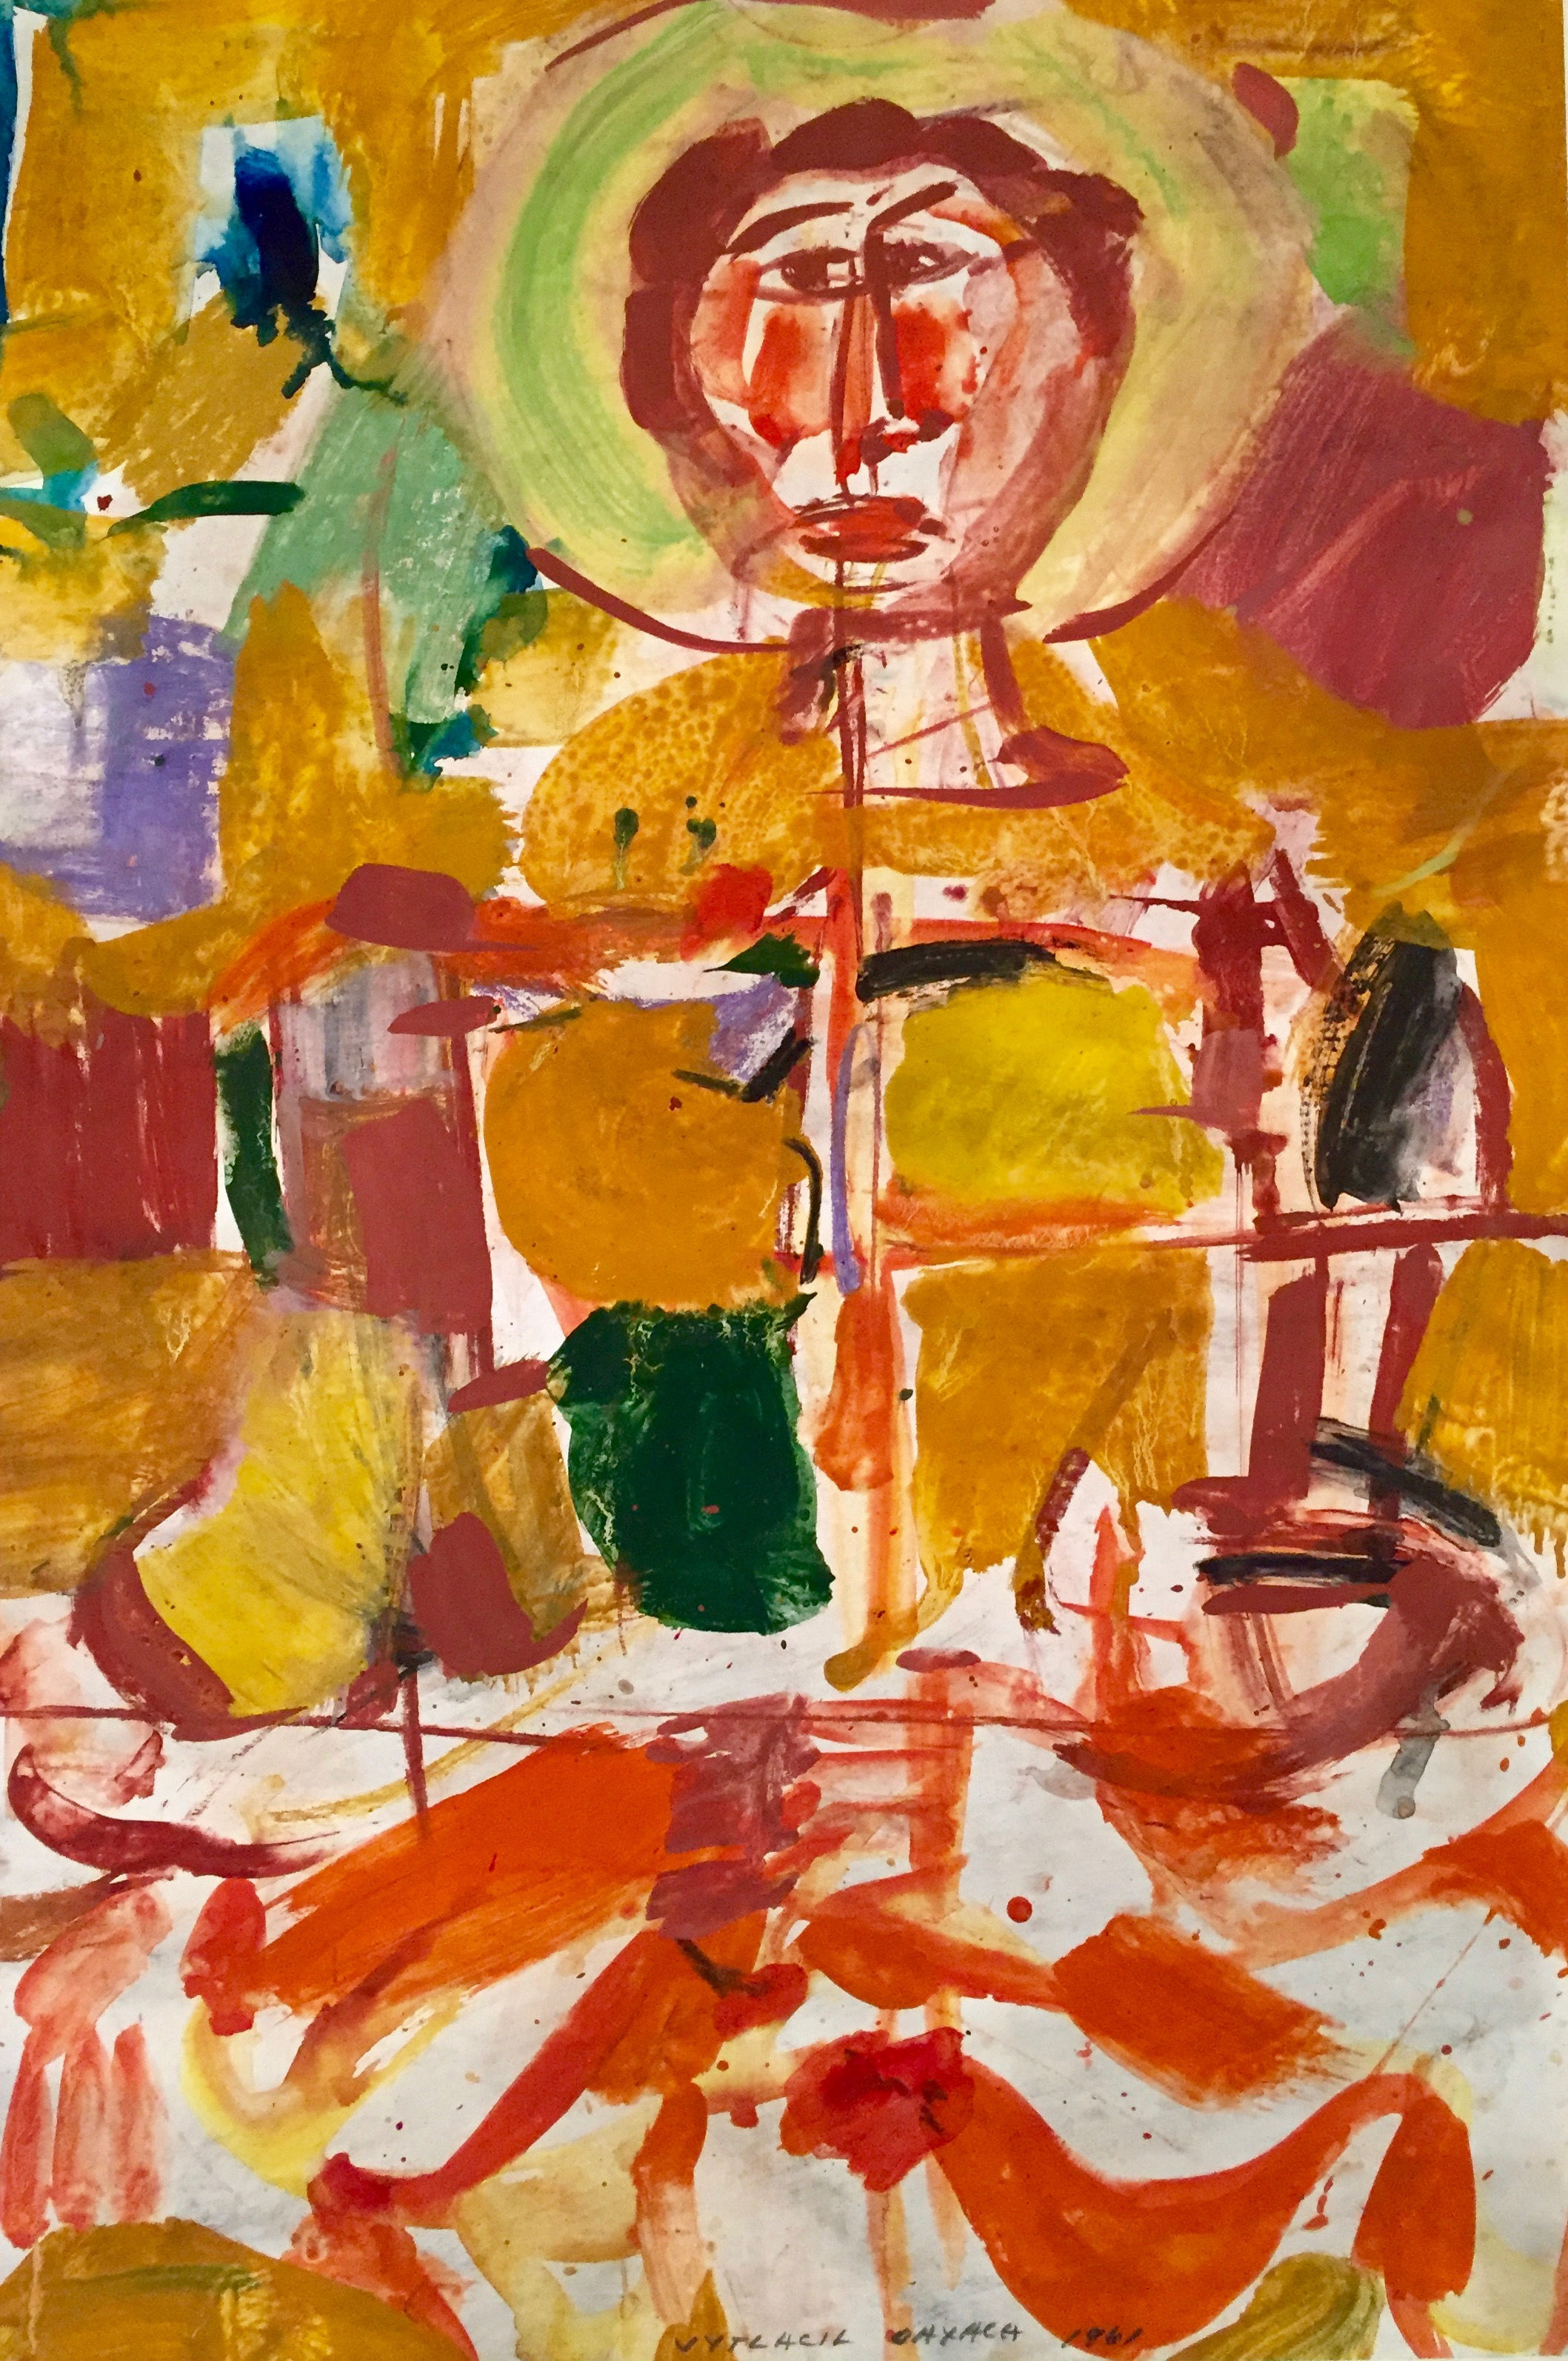 A mexican figure, 1961    Medium: Paintings, Acrylic and tempera on paper   Size: 34 x 23 in. (86.4 x 58.4 cm.)  Markings: Signed and dated in the lower center